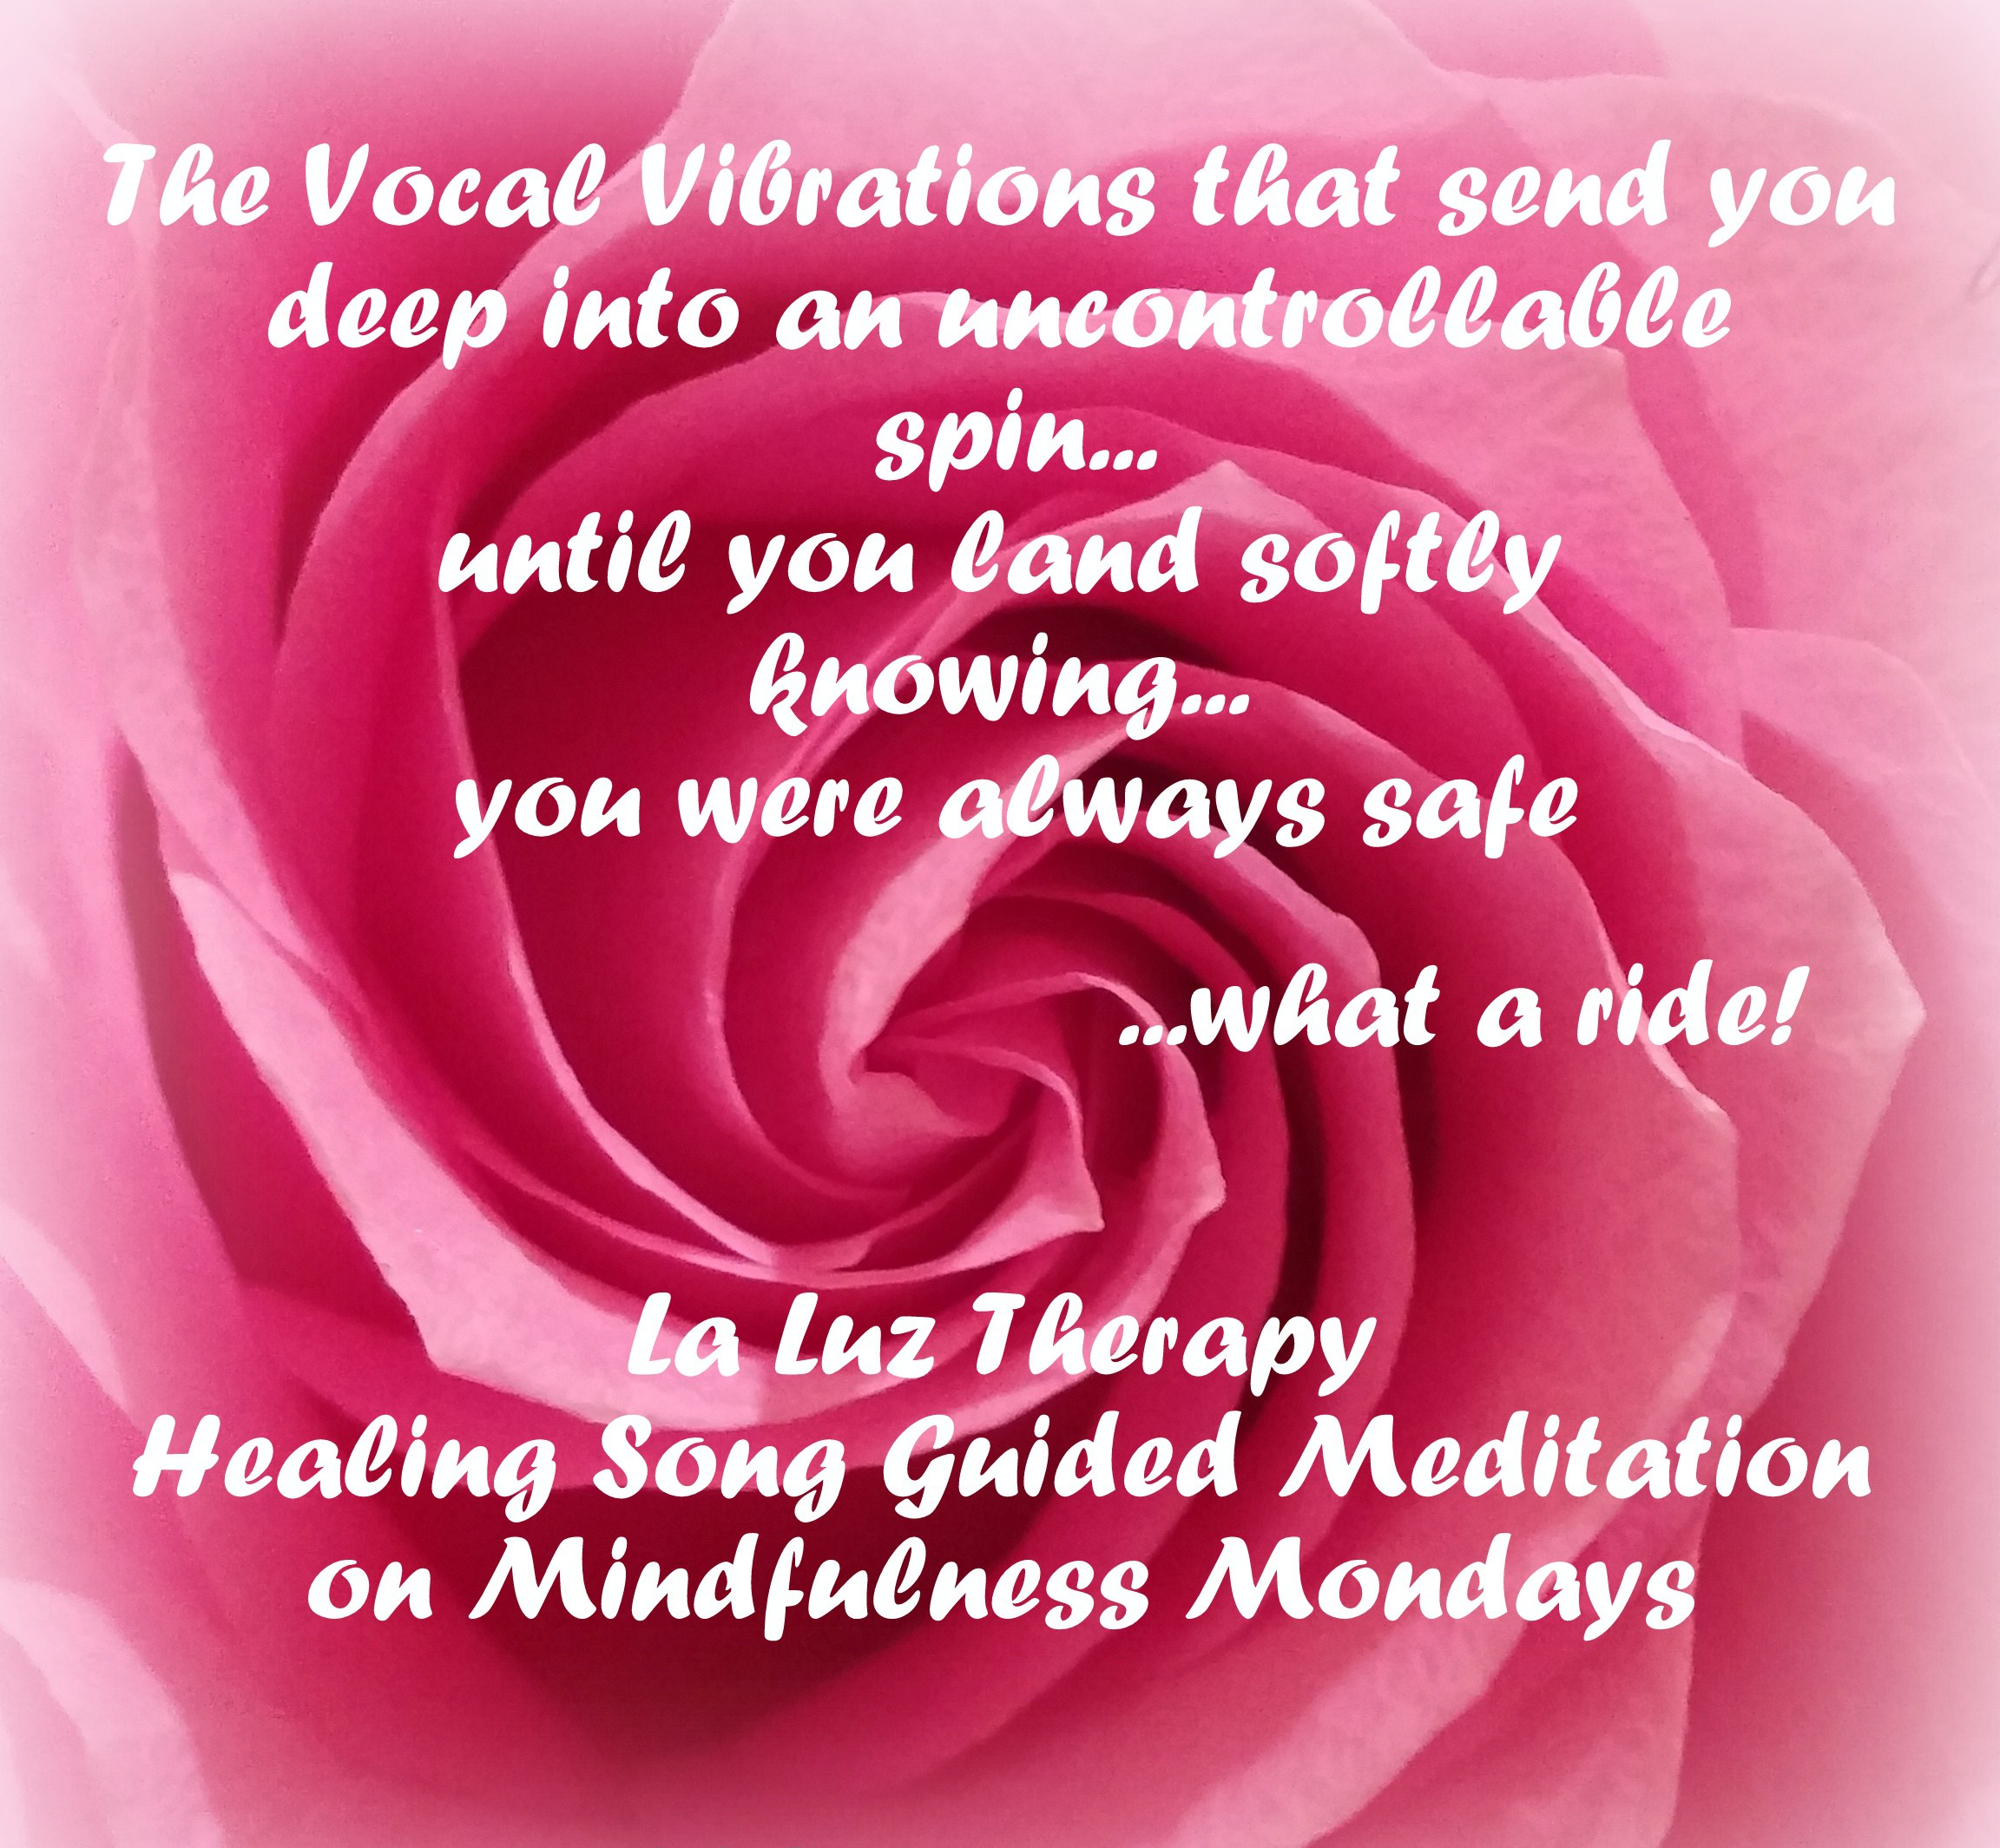 Healing Song Guided Meditation - La Luz Therapy www.laluztherapy.com Lucy Toppetta